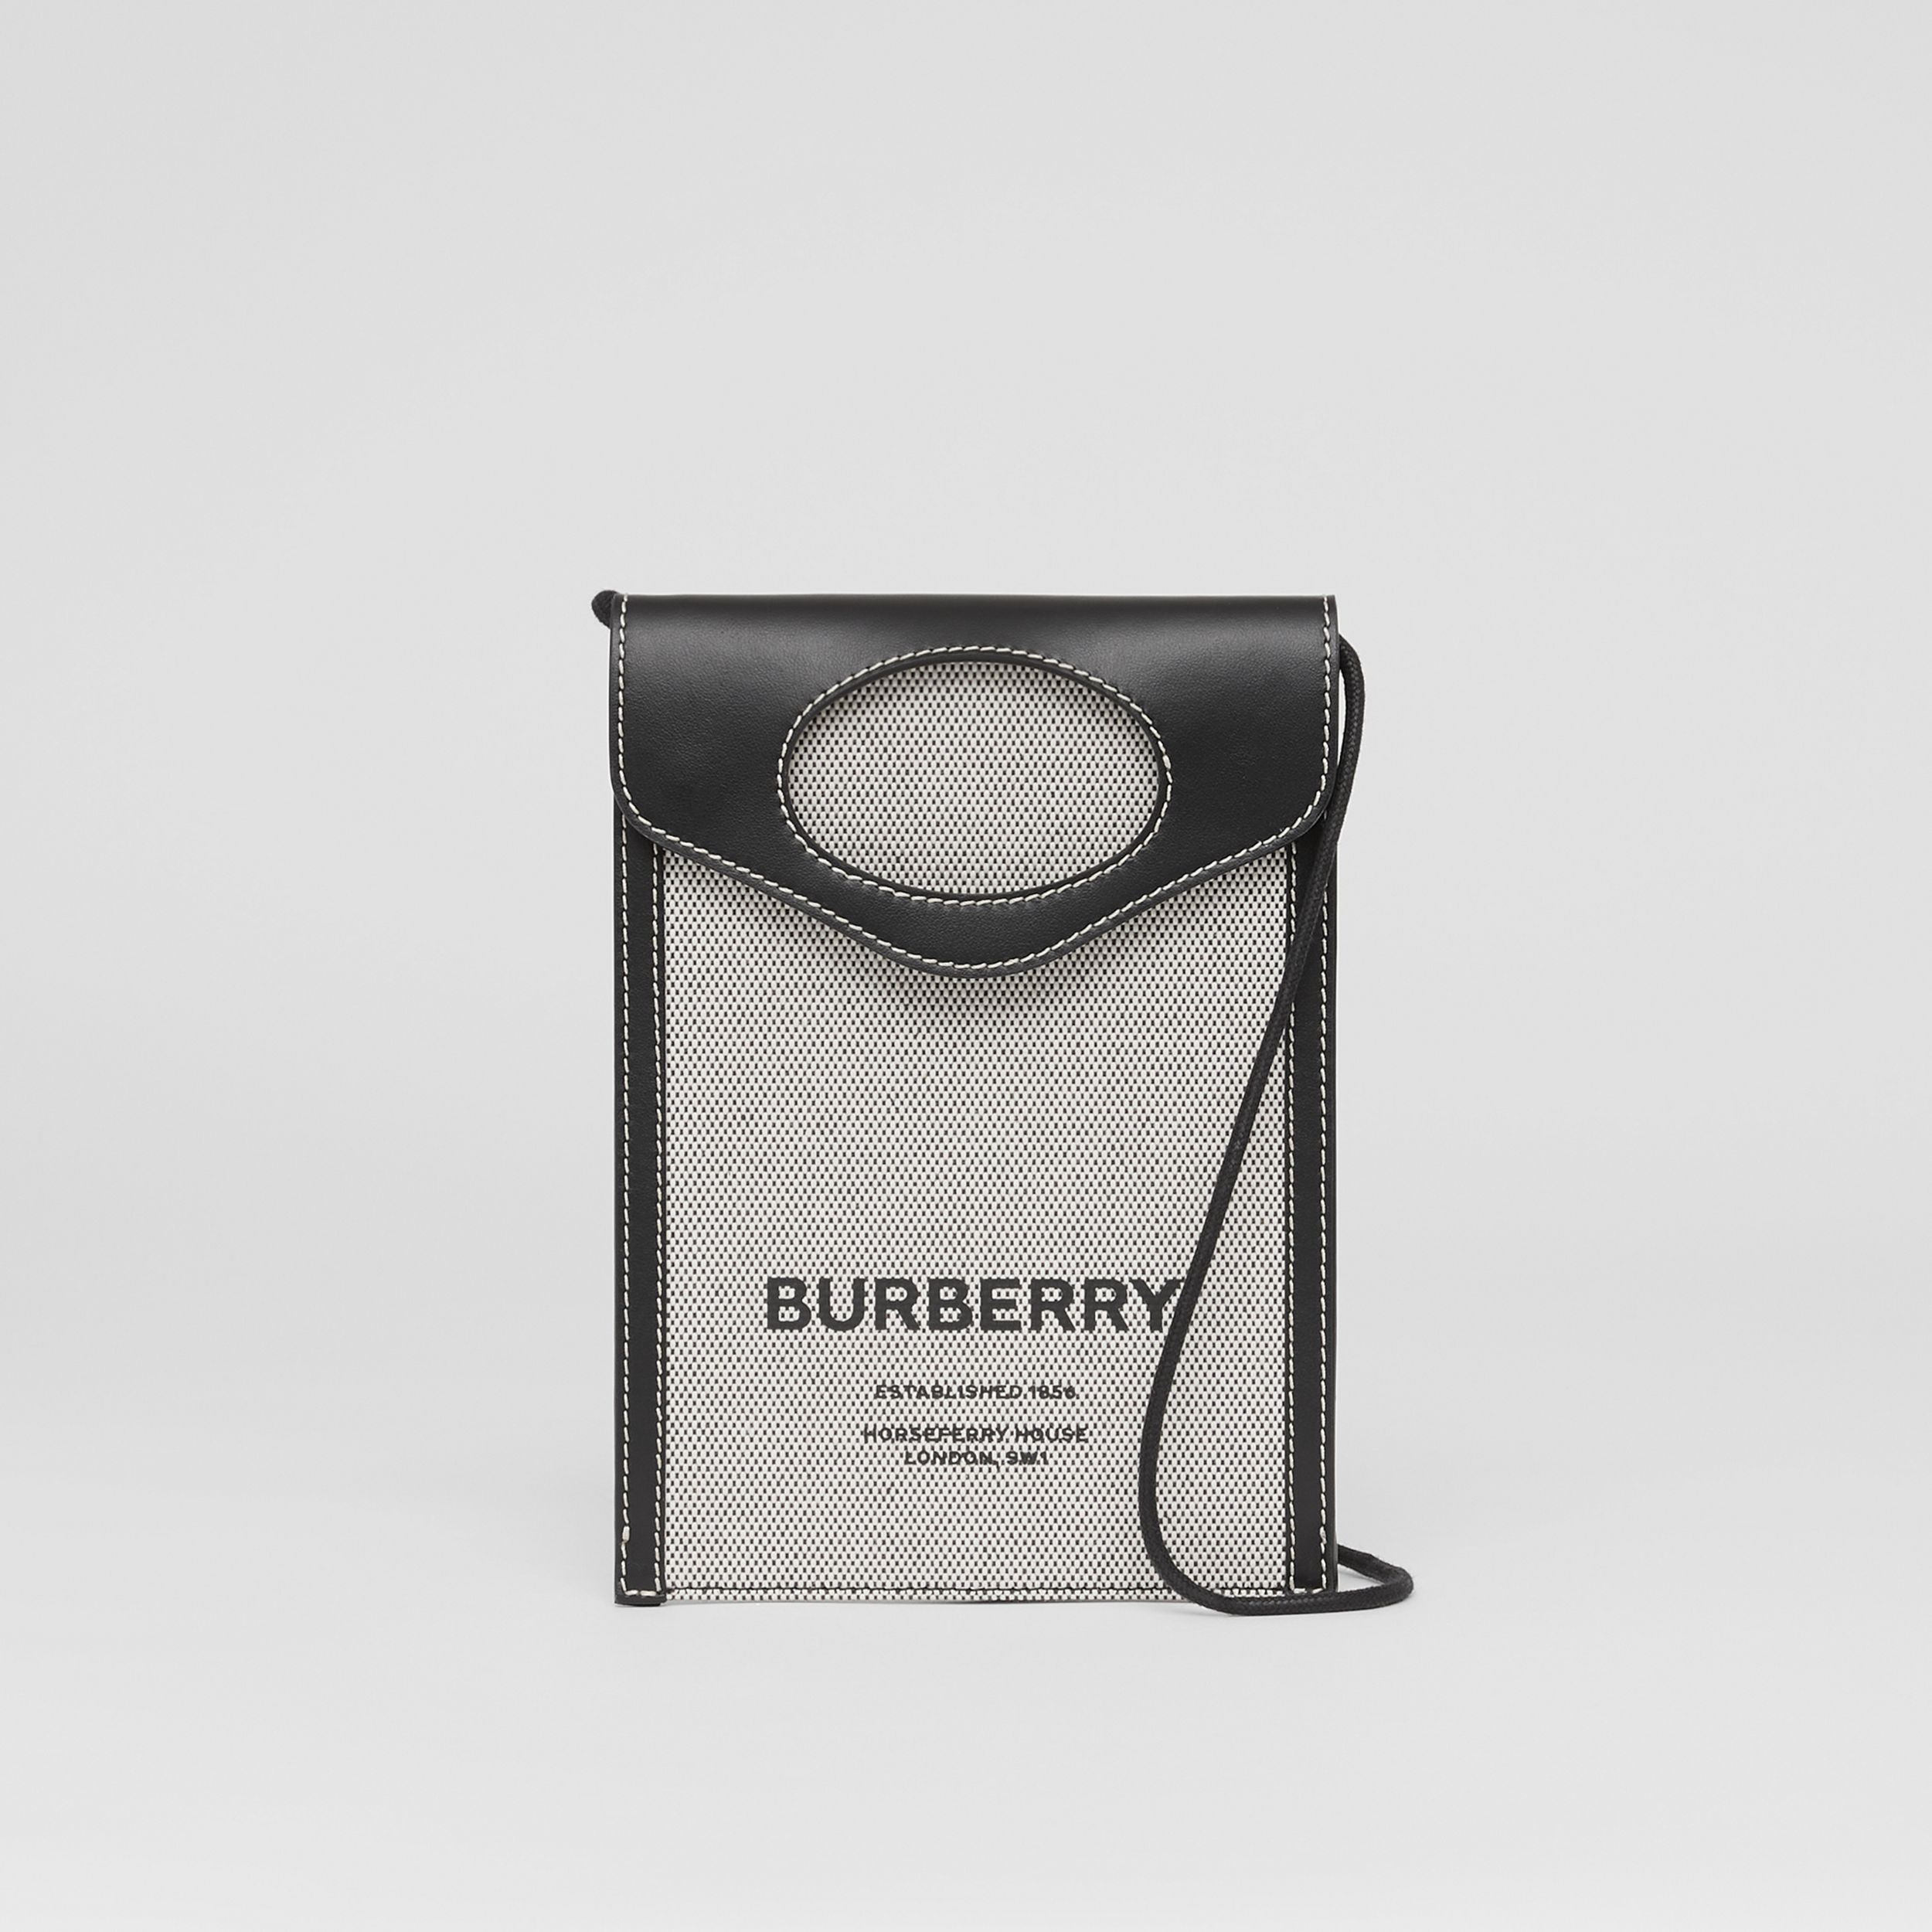 Two-tone Canvas and Leather Pocket Phone Case in Black - Men | Burberry - 1